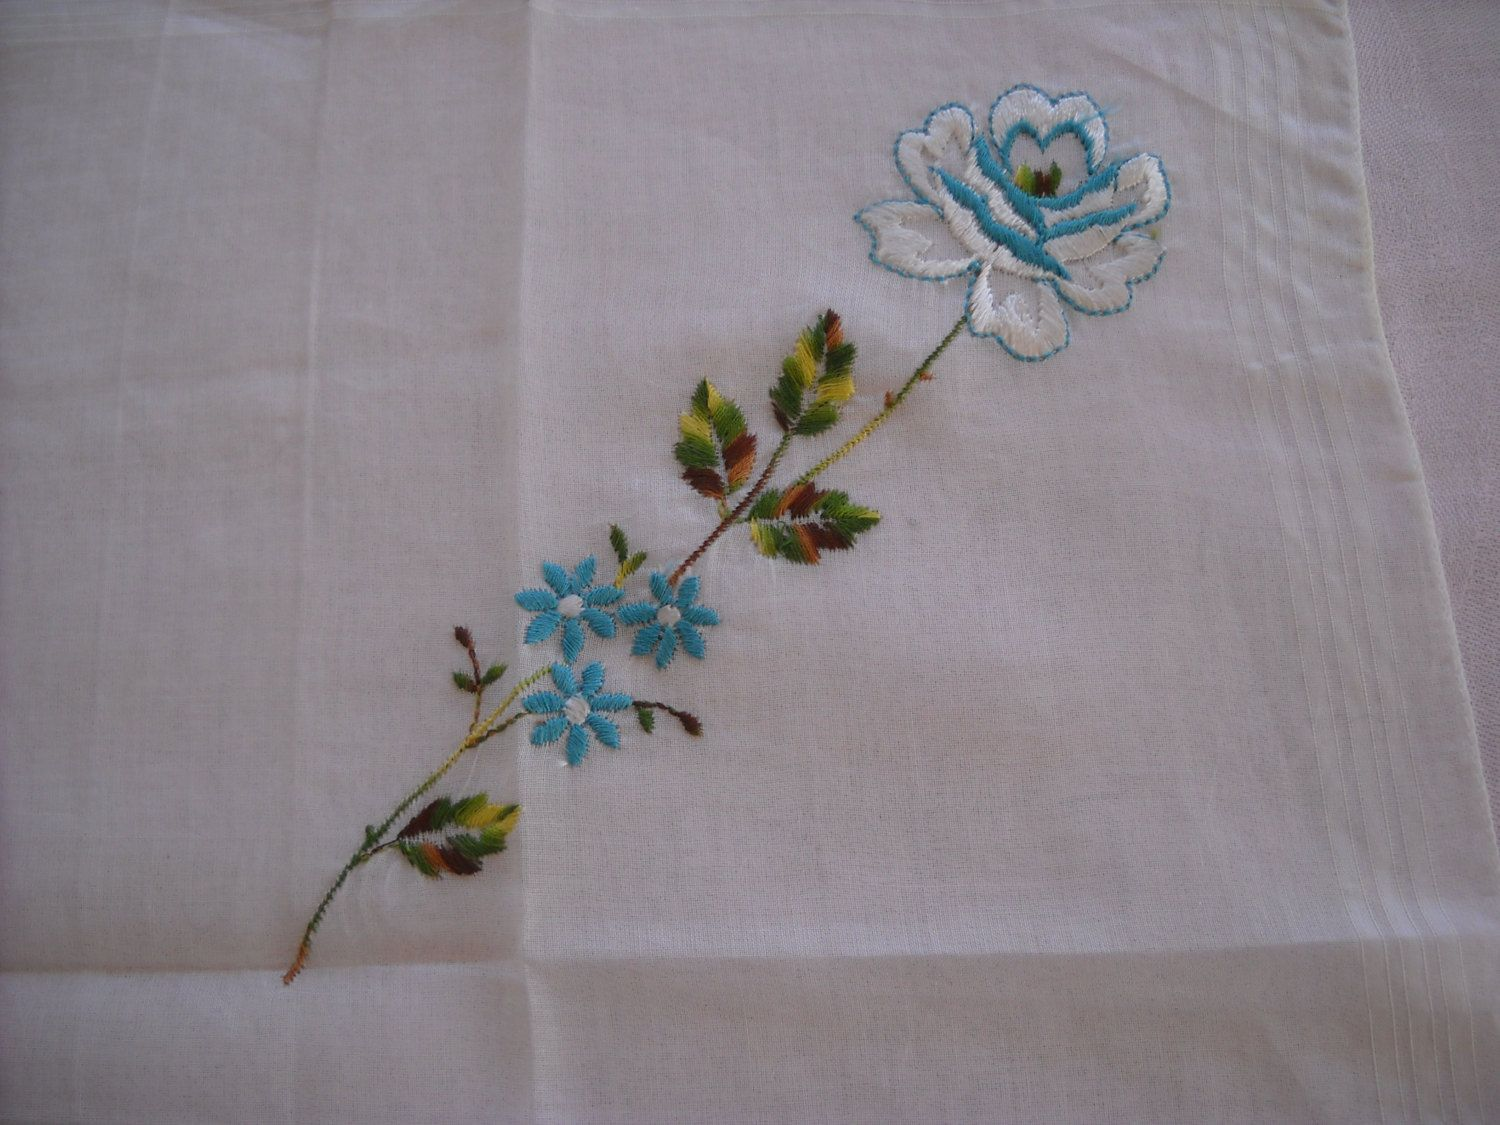 Vintage Handkerchief Teal Blue and White Floral Embroidery Made in Hong Kong NOS with Tag by LeapofFaithCraftVin on Etsy